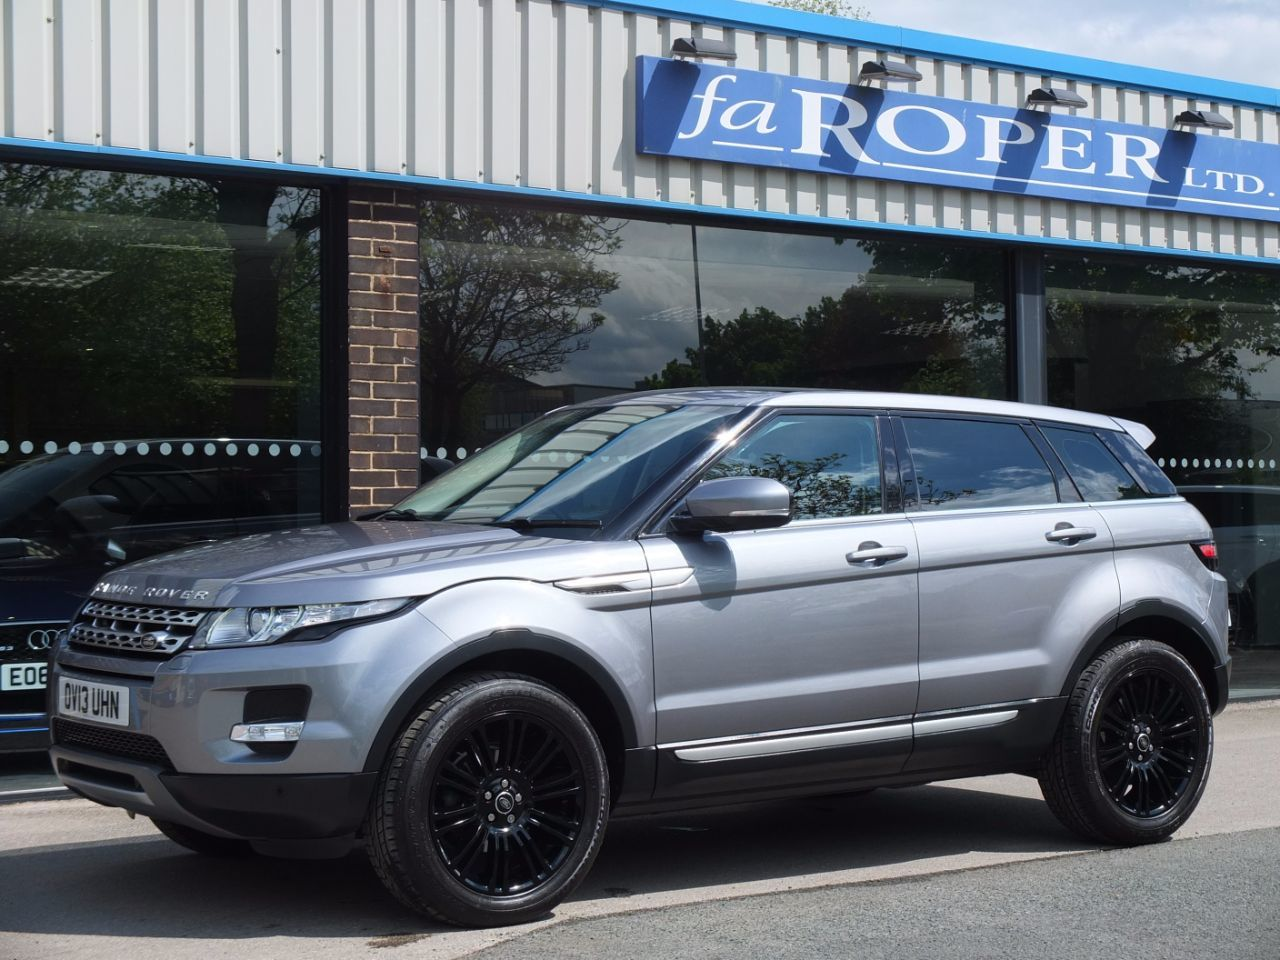 Land Rover Range Rover Evoque 2.2 SD4 Prestige 5 door Auto Estate Diesel Orkney Grey Metallic